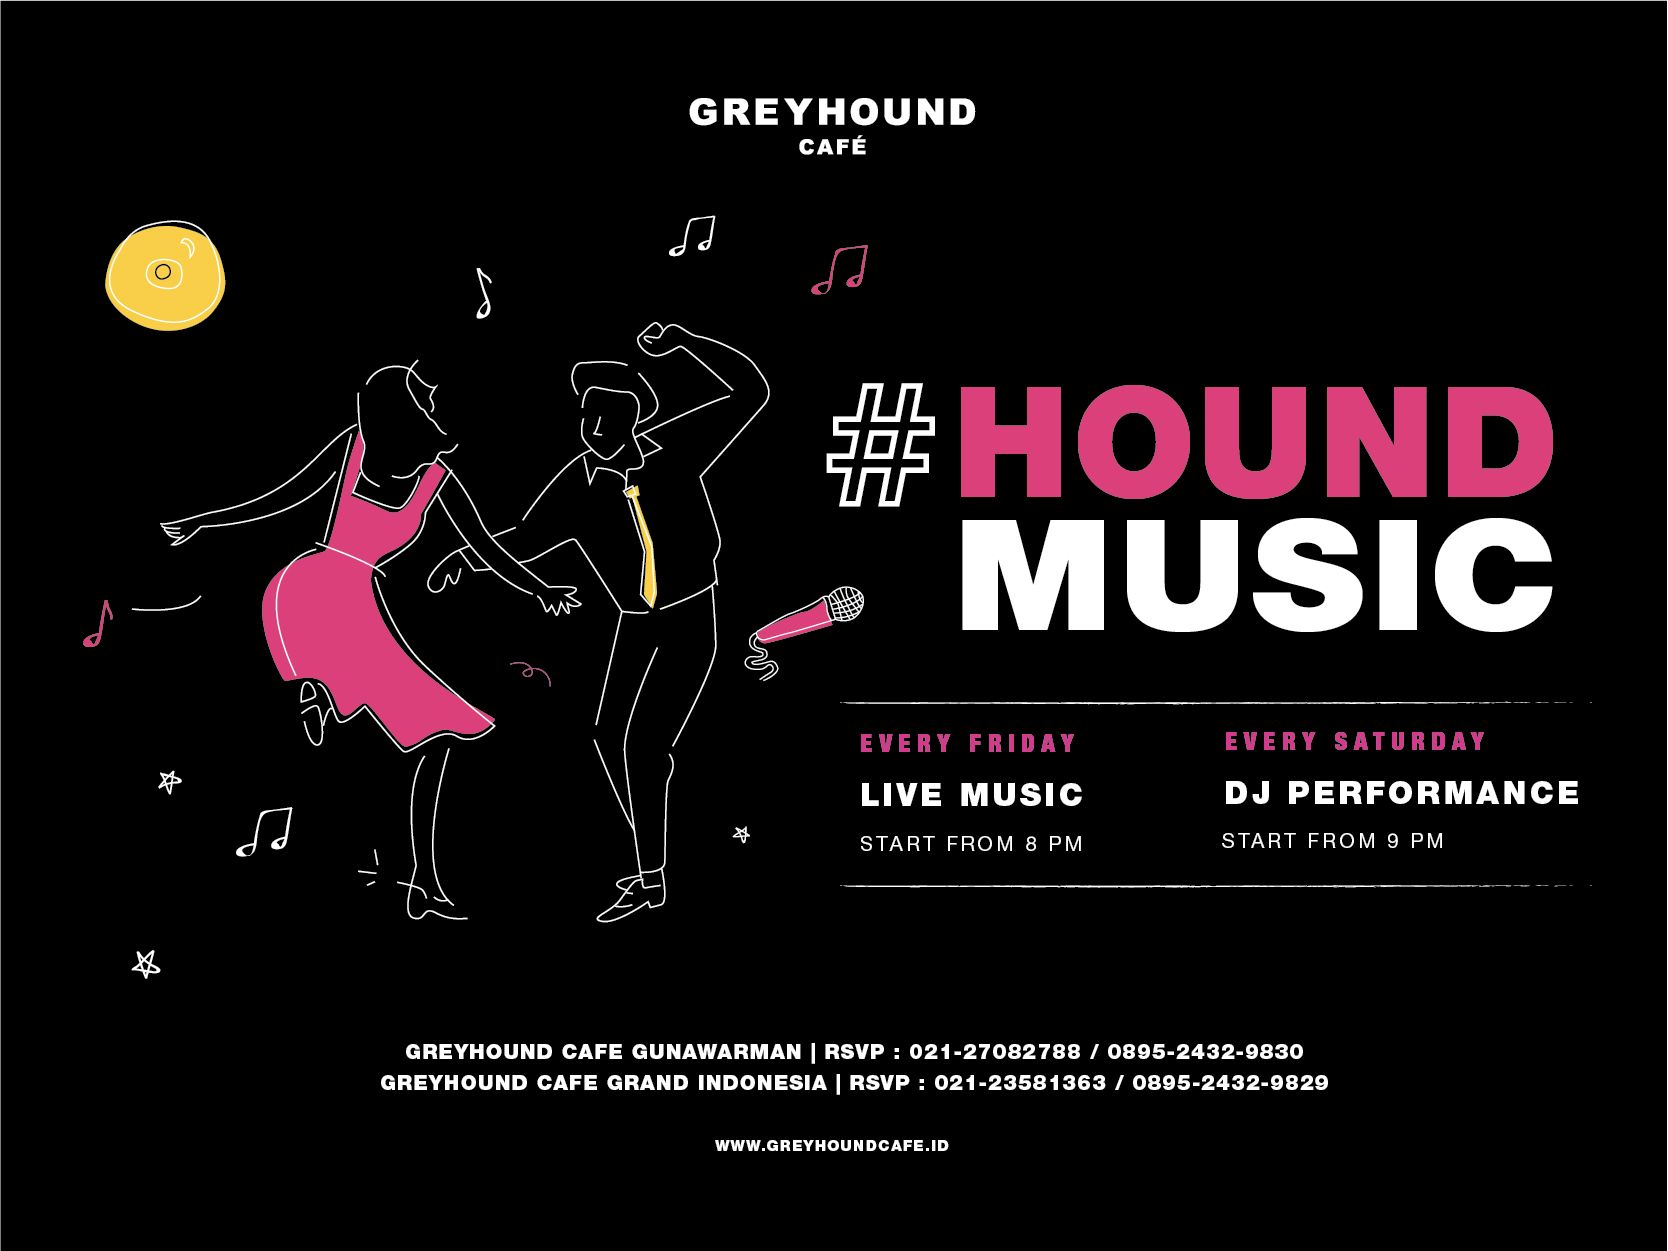 HOUND MUSIC EVERY FRIDAY AND SATURDAY AT GREYHOUND CAFE! image